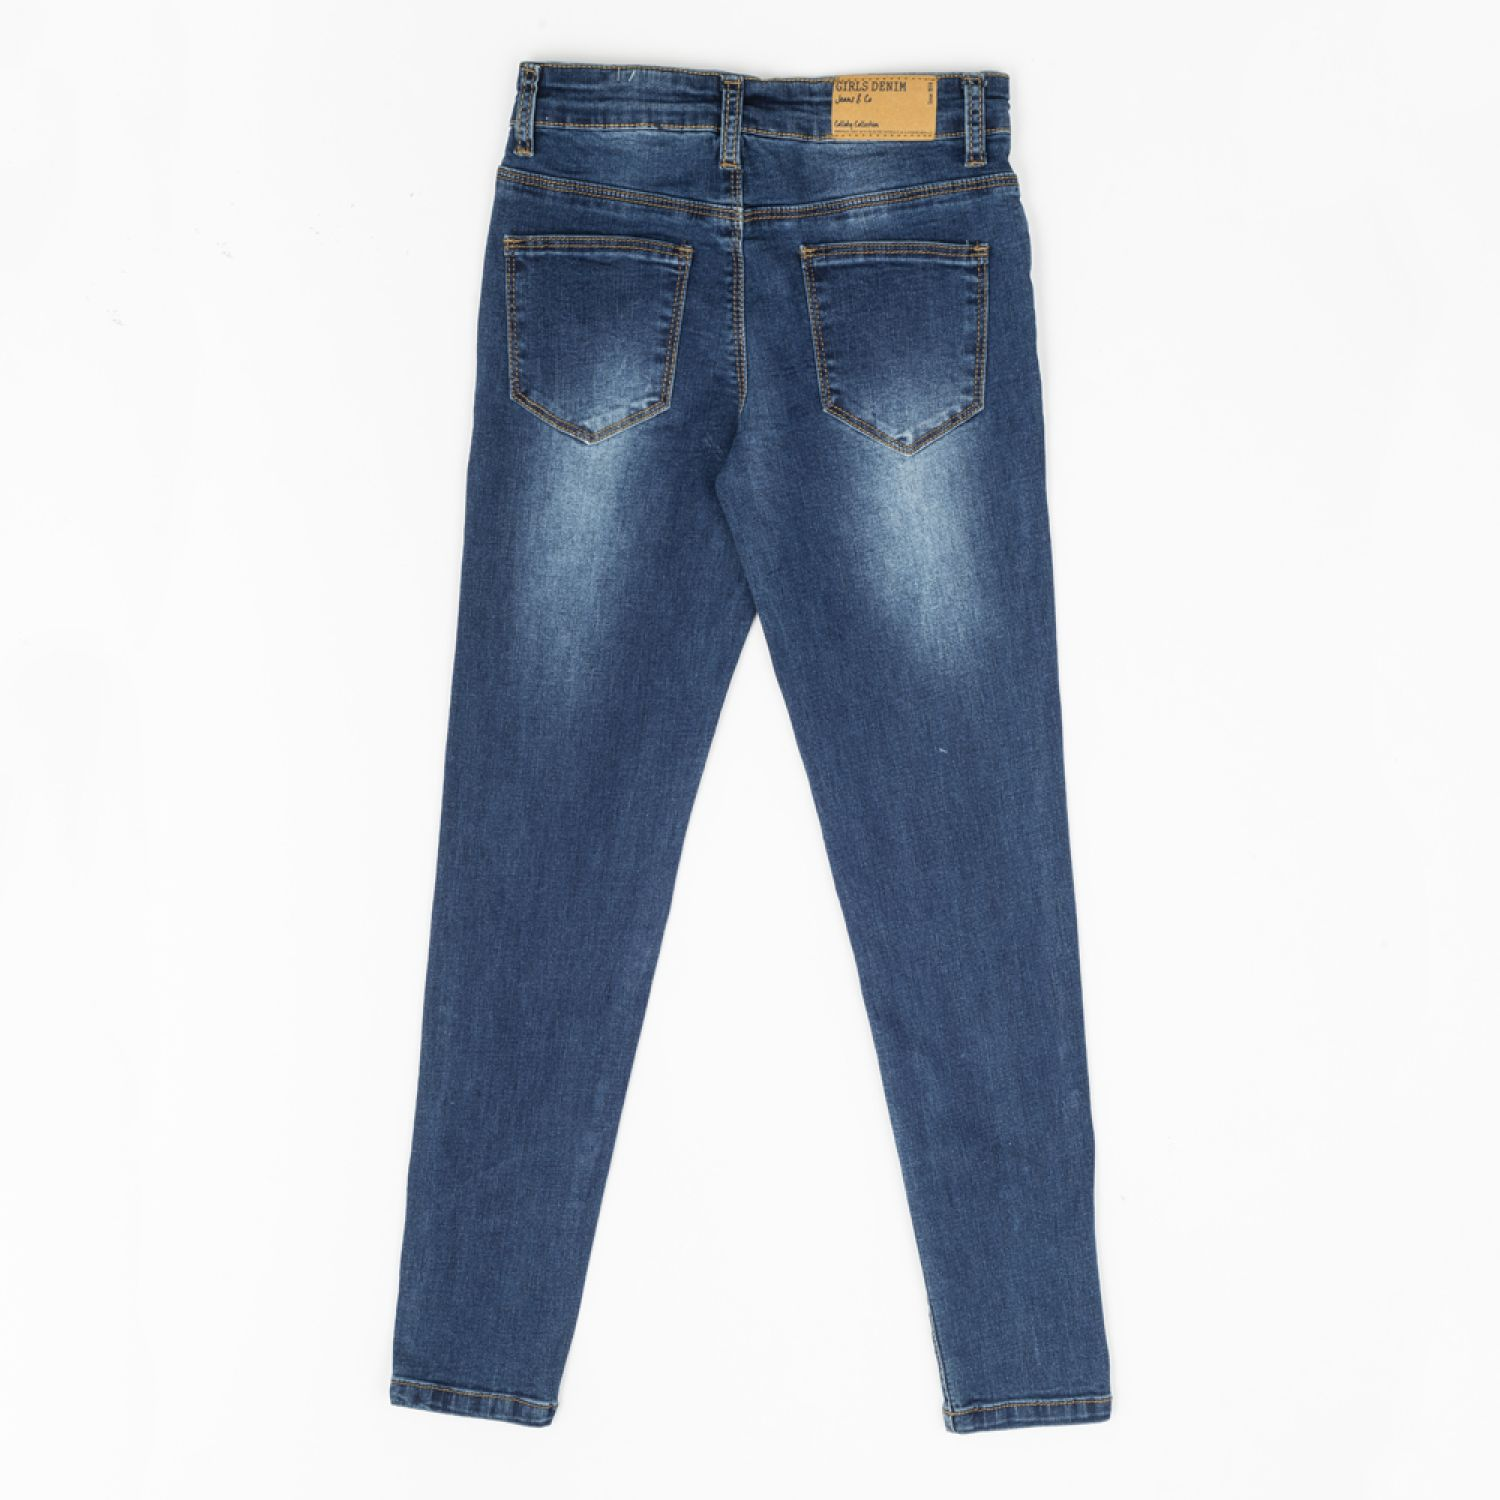 Colloky Jeans Kid Girl Jeme0250 Denim Pantalones y capris